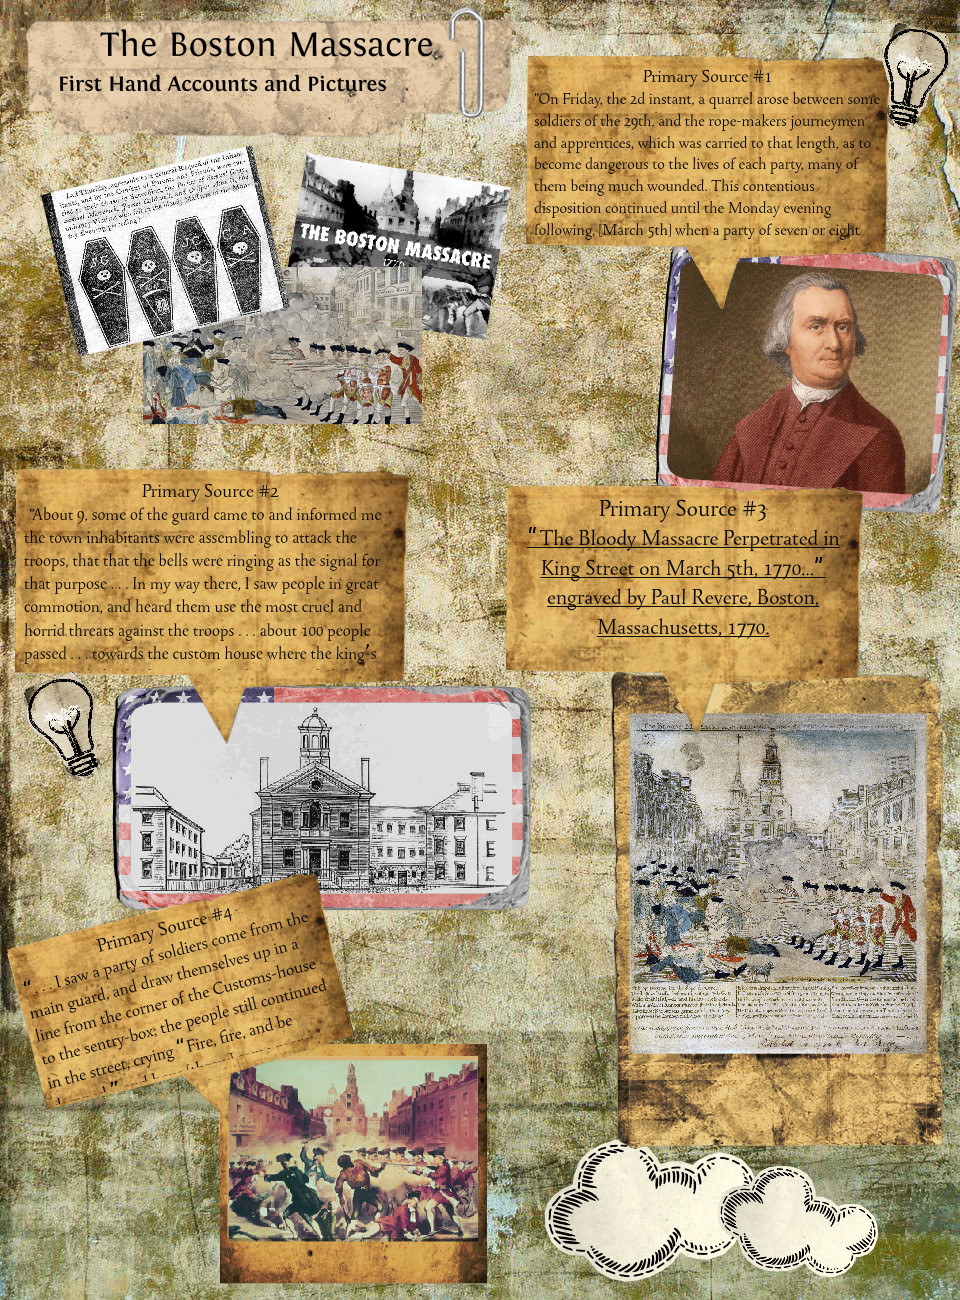 The Boston Massacre First Hand Accounts and Pictures